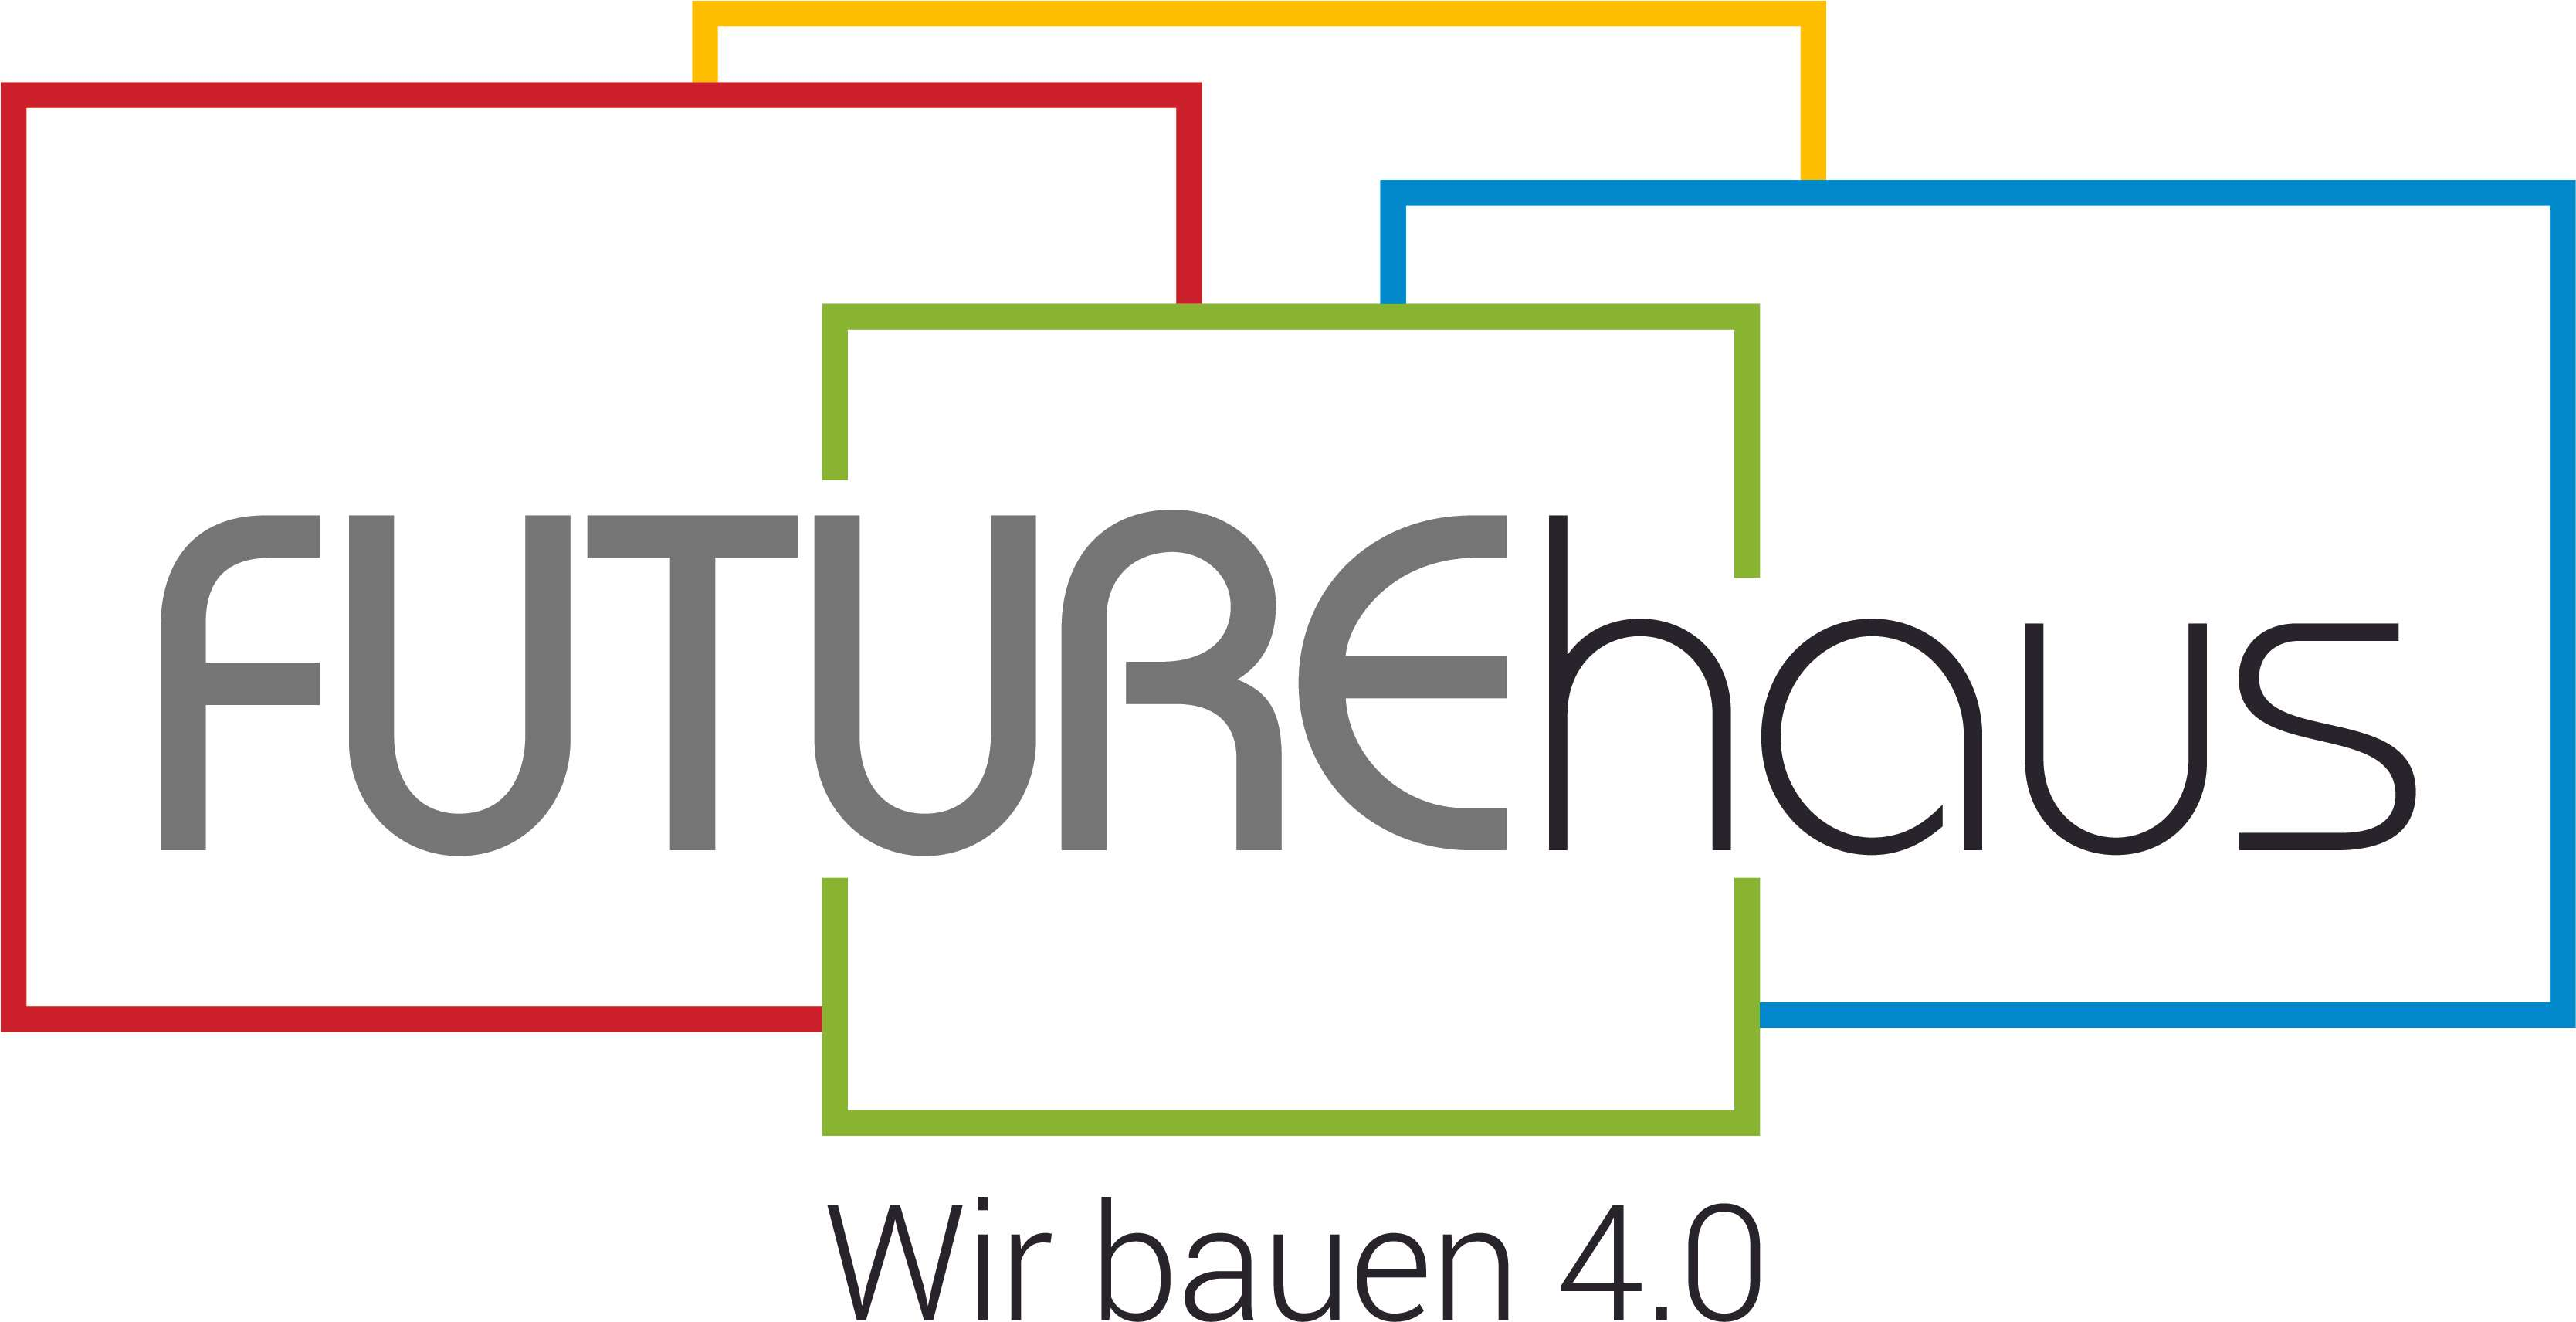 Haus 4.0 Holding GmbH & Co. KG